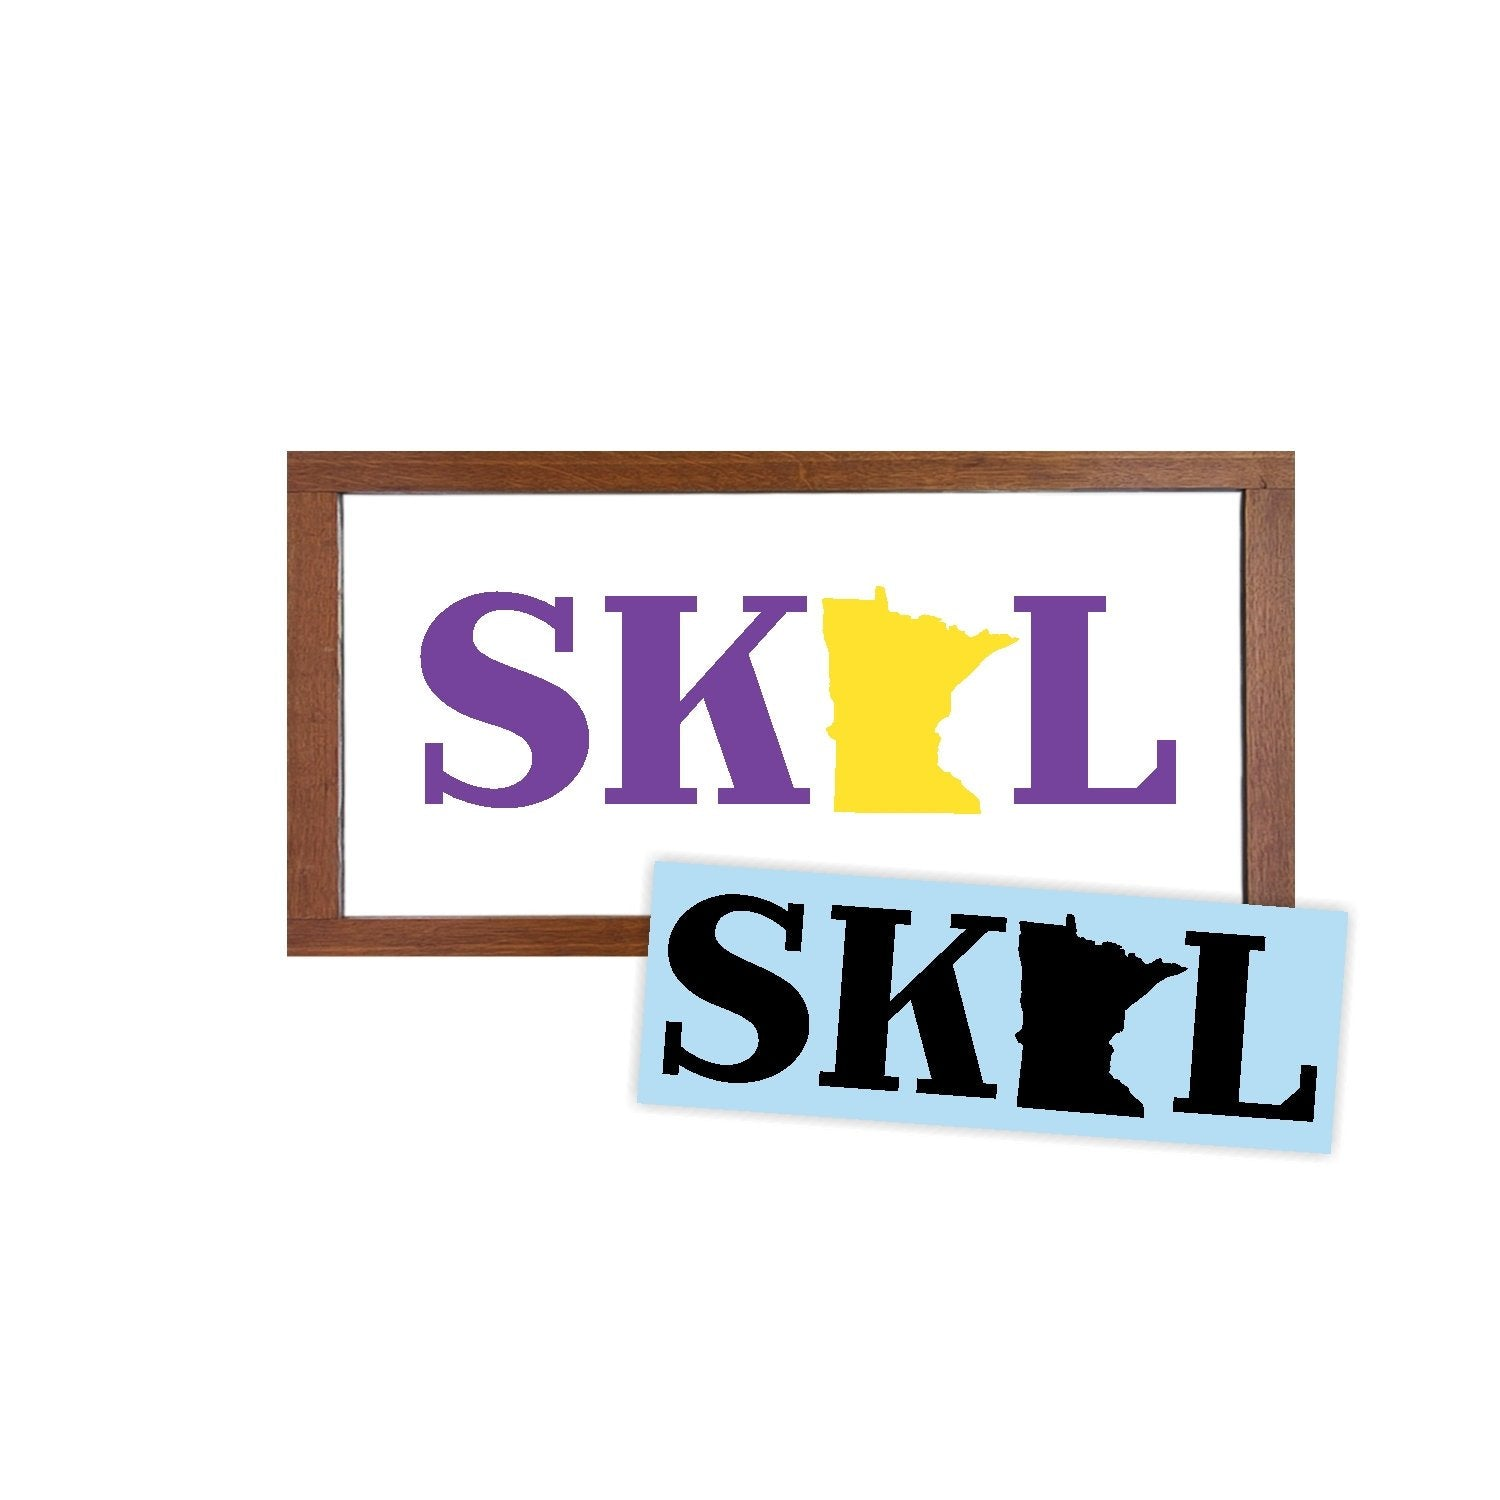 Skol Minnesota Vikings Stencil - Paint Your Own Sign - Reusable Plastic Stencil